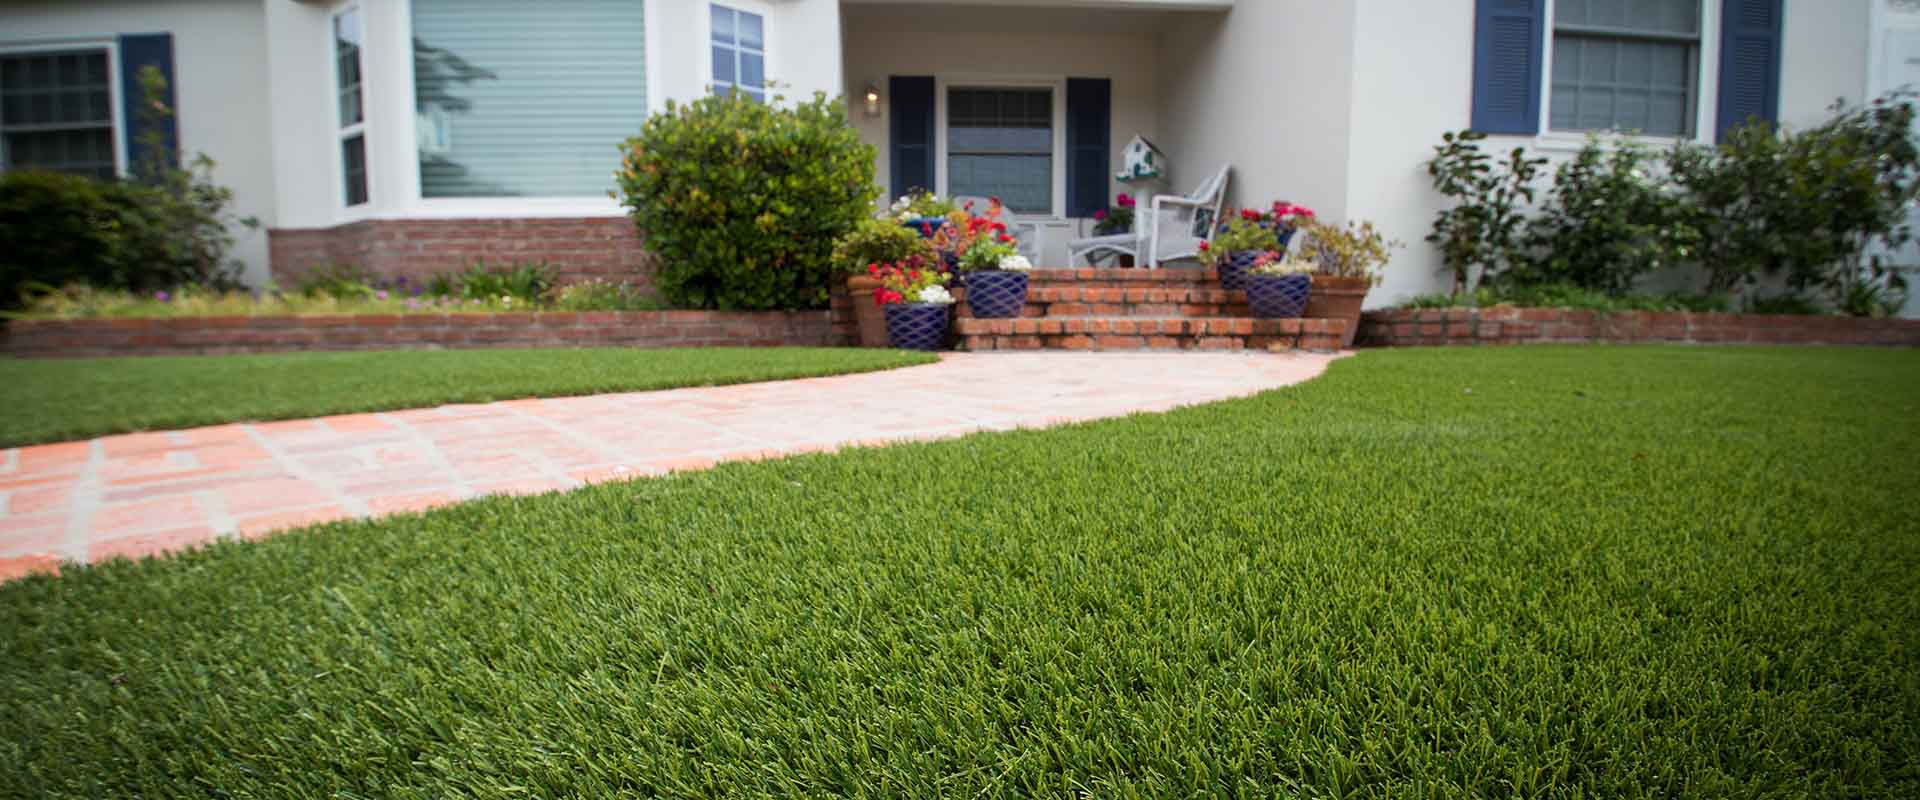 Maintenance-free waterless grass for your home by SYNLawn of Georgia